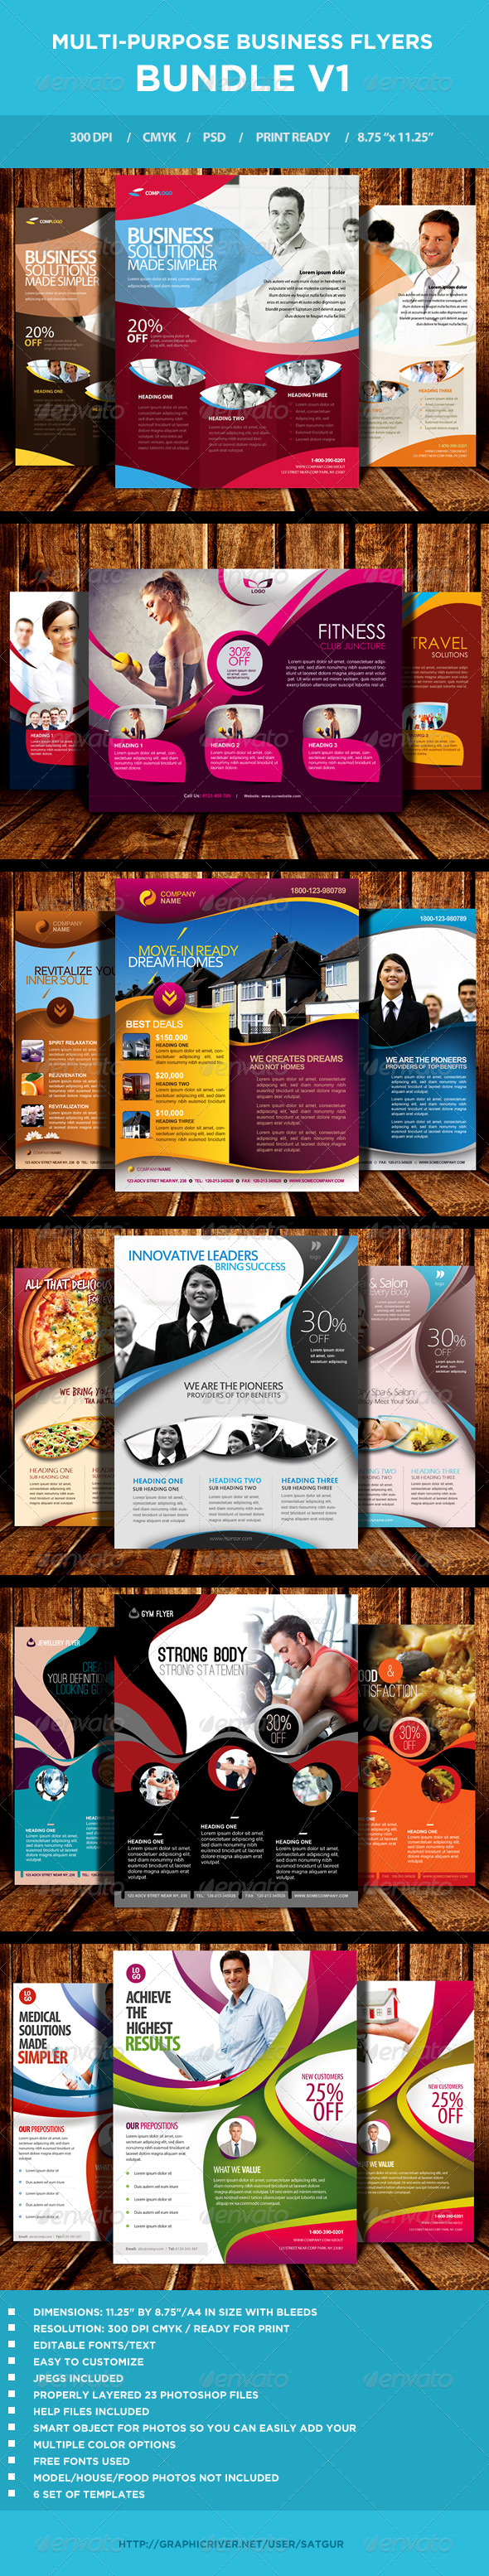 GraphicRiver Multi-purpose Business Flyers Bundle V1 6868650